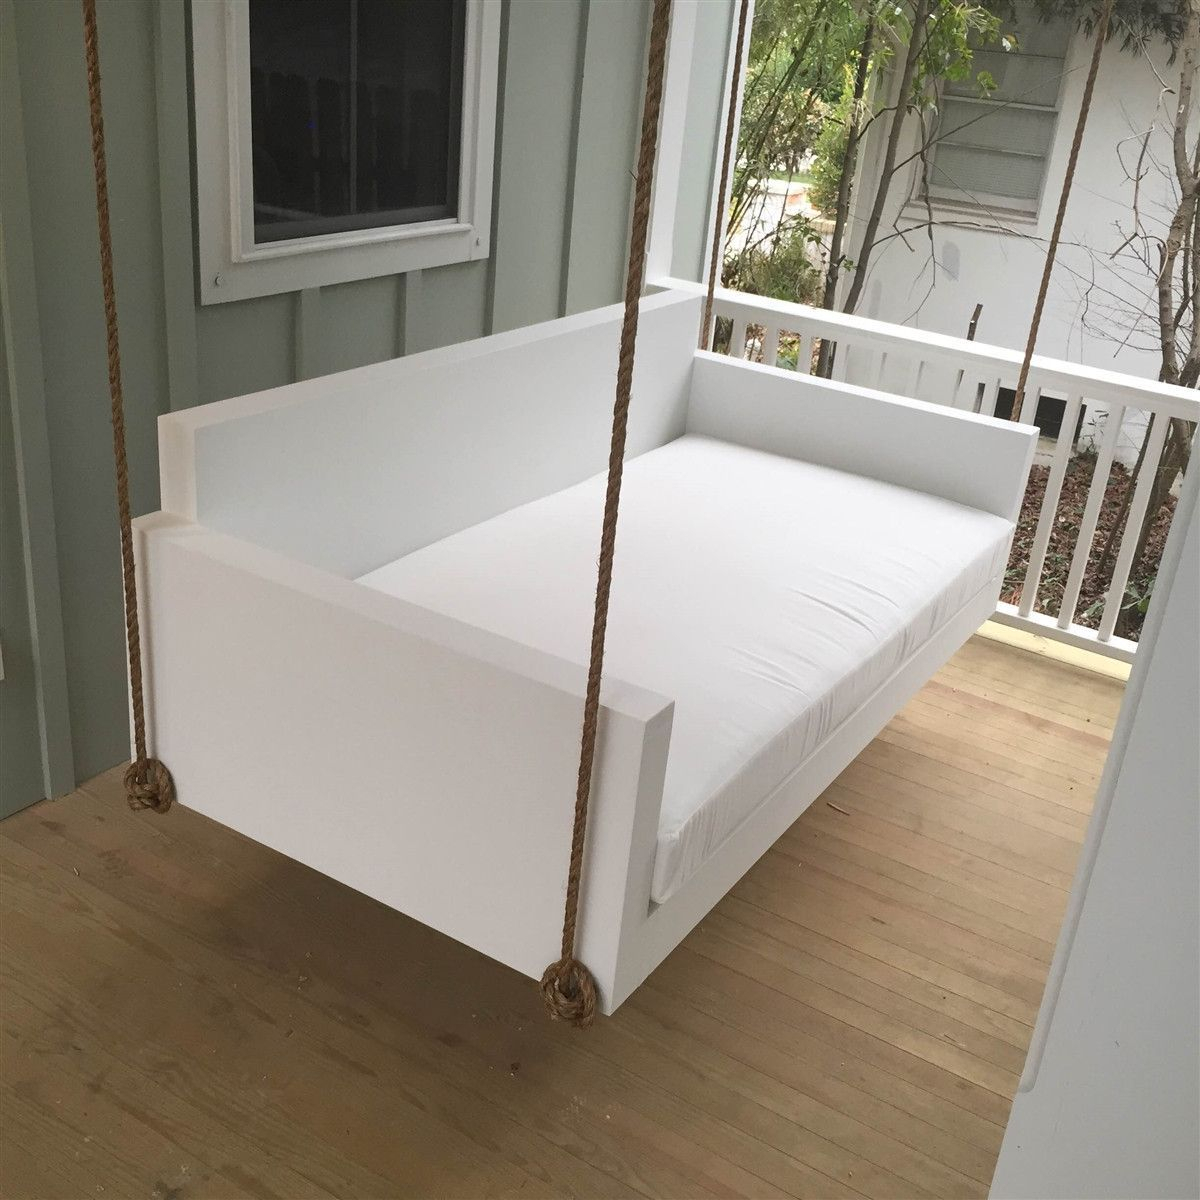 Lowcountry Swing Beds The Moultrie Daybed Swing | Cabana With Regard To Country Style Hanging Daybed Swings (View 11 of 25)